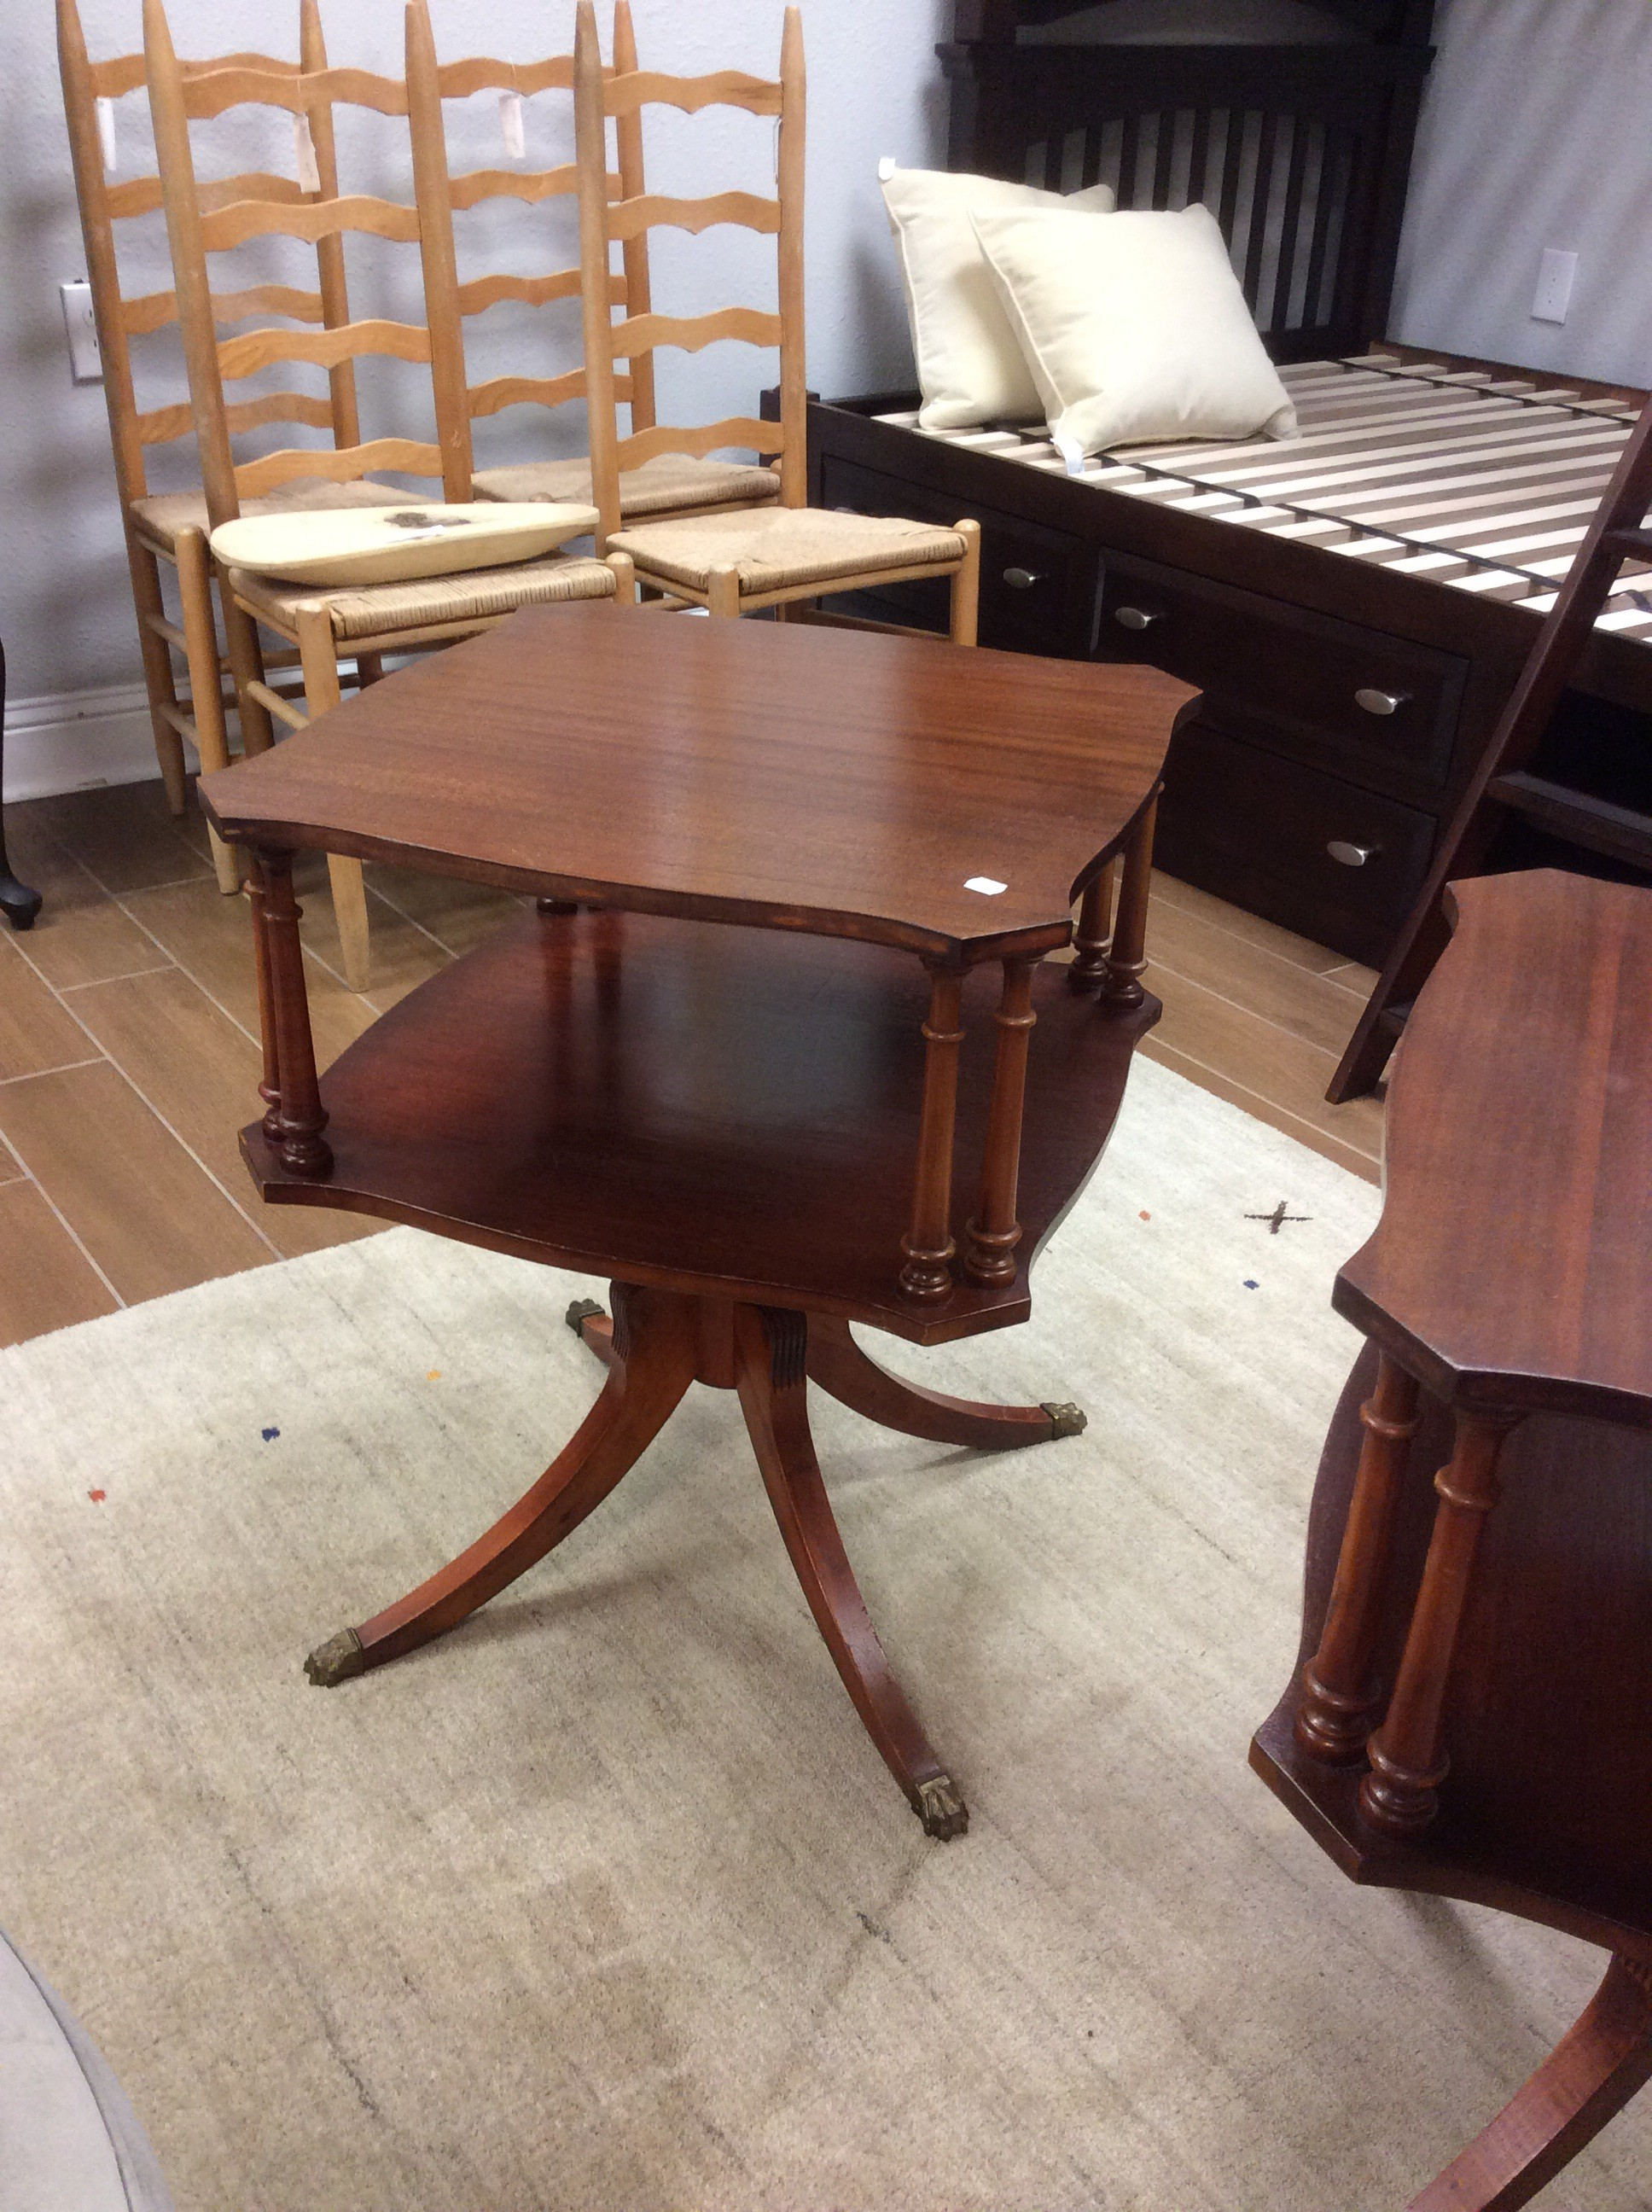 This pretty Duncan Phyfe antique end table features a dark wood finish and is 2-tiered. We have 2 of them.